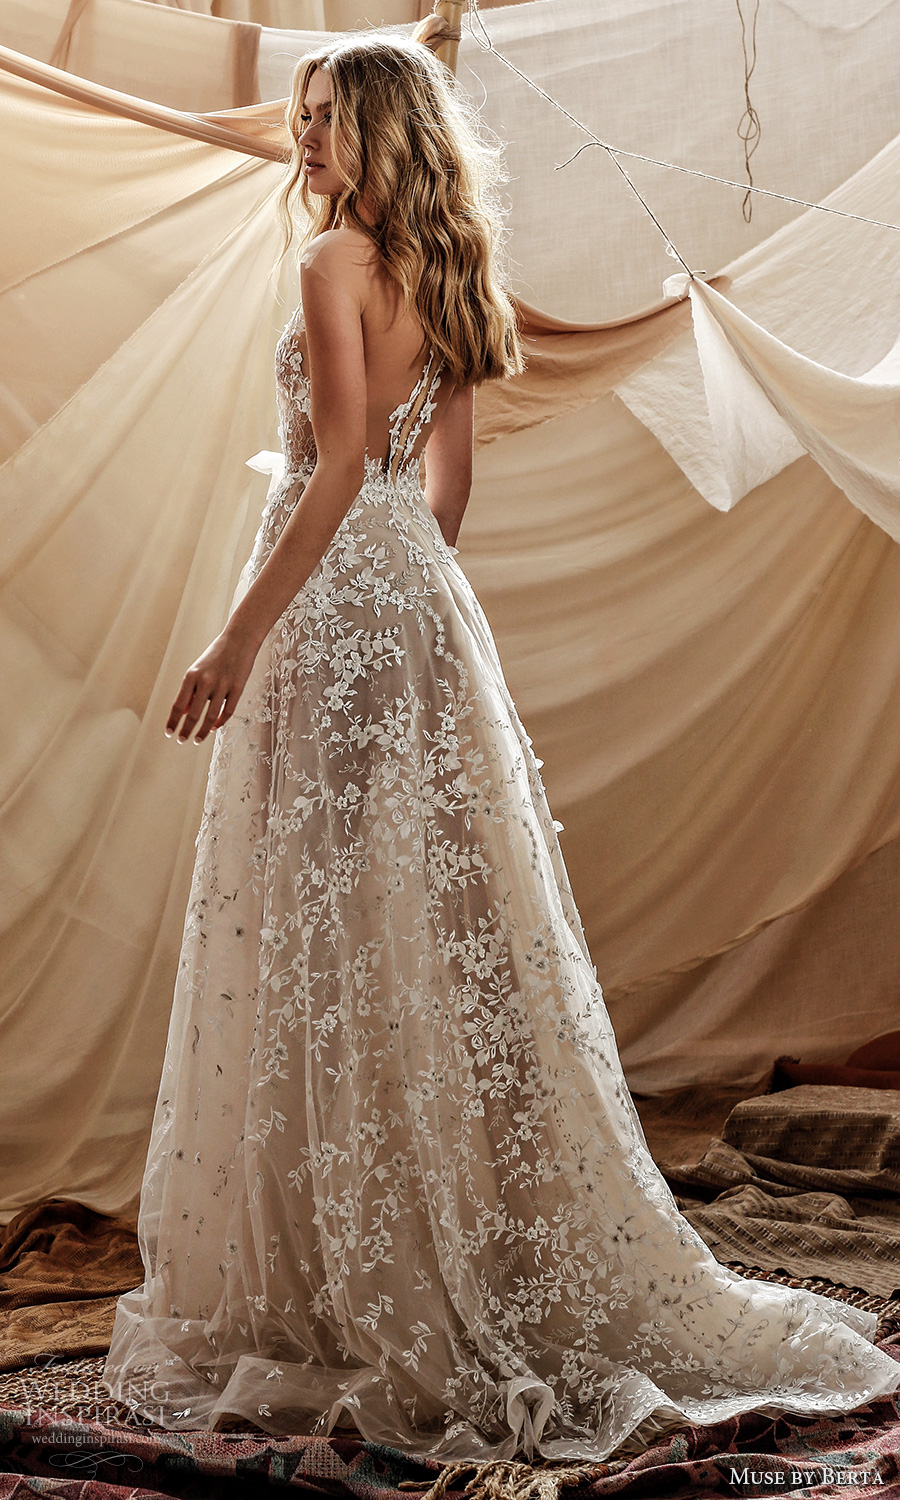 muse by berta spring 2021 bridal sleeveless illusion straps plunging v neckline fully embellished lace a line ball gown wedding dress chapel train (2) bv